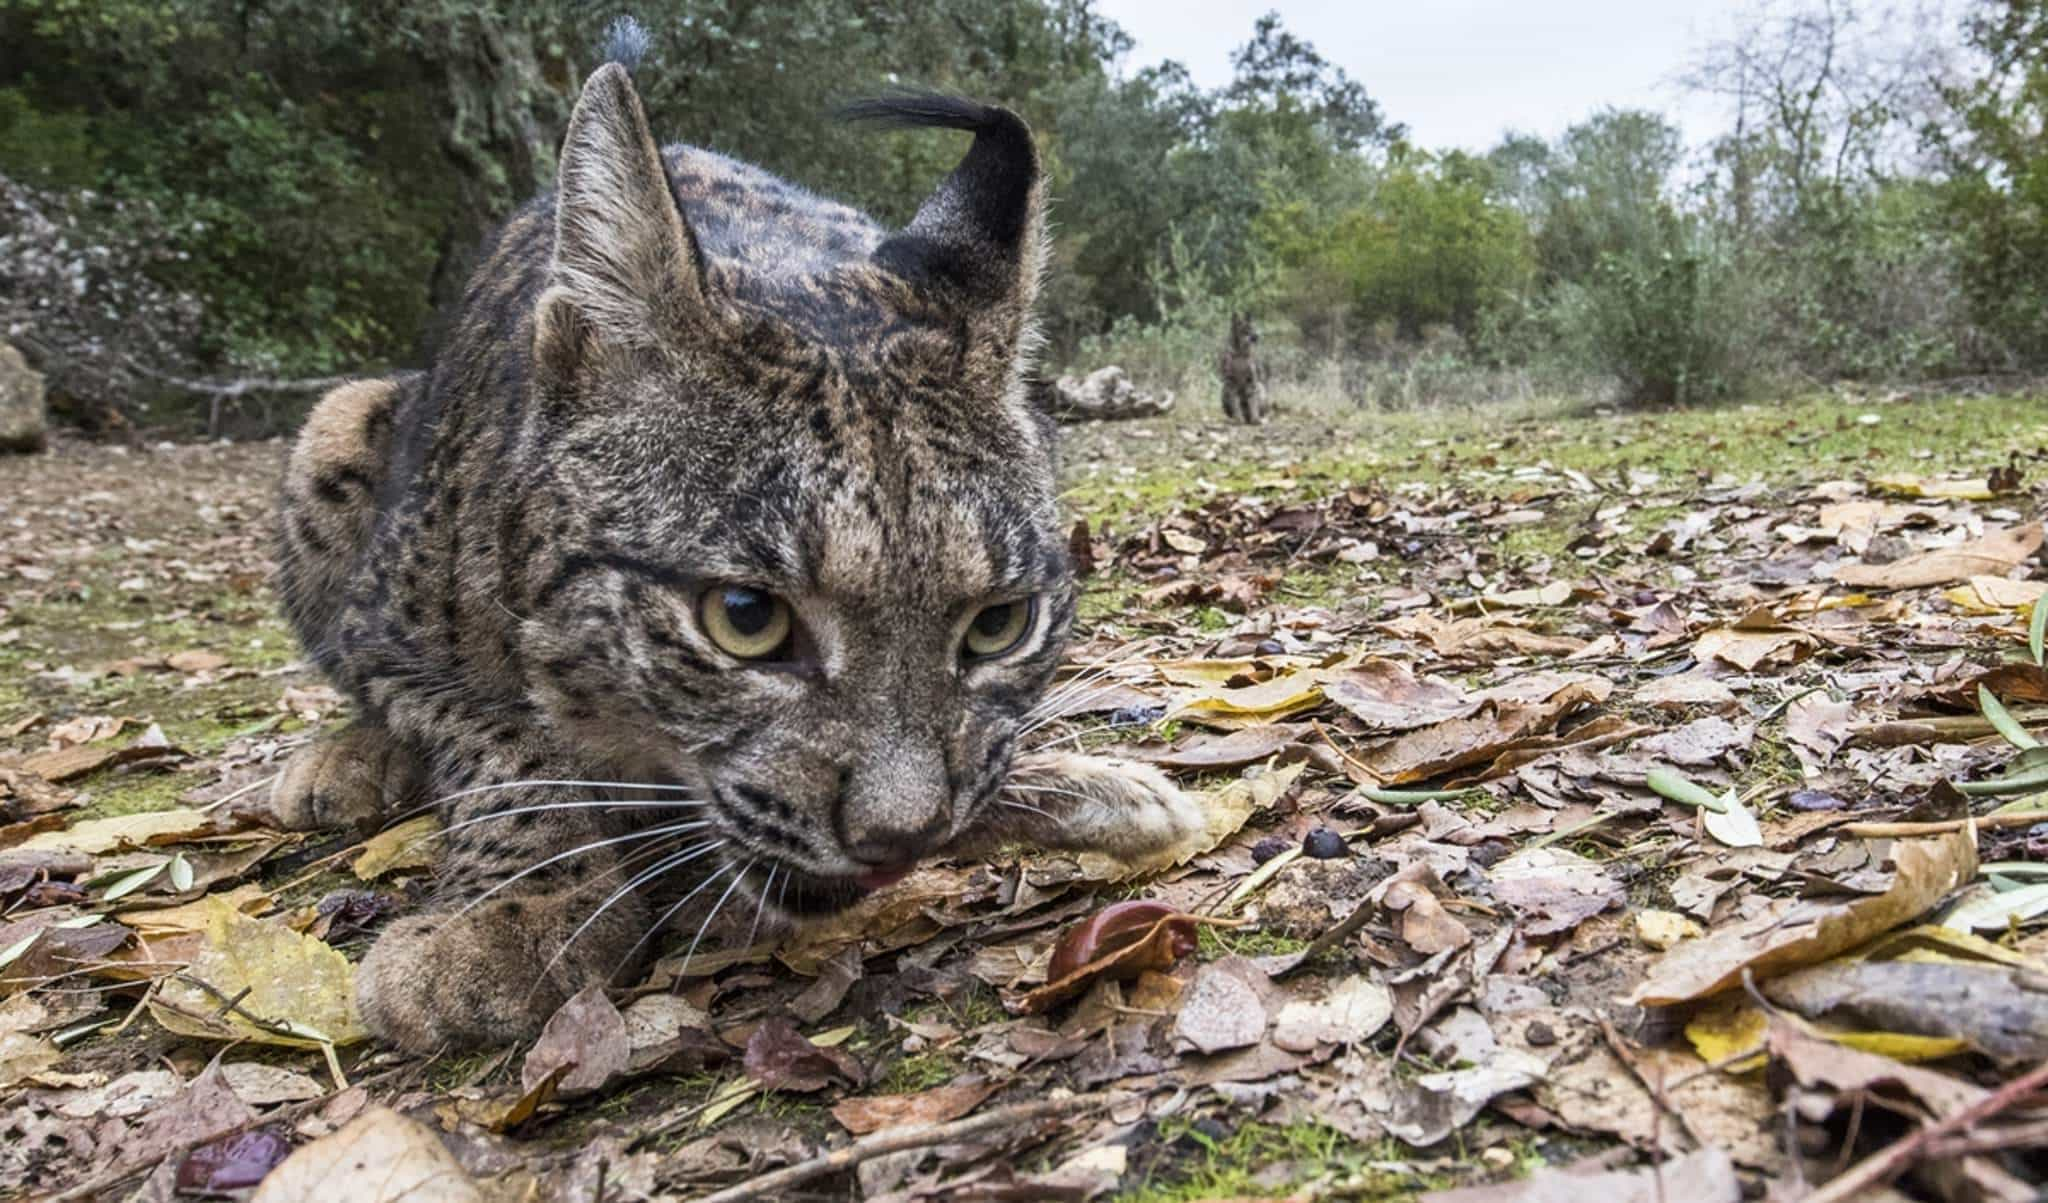 A Wide Angle Image Of An Iberian Lynx In The Sierra Morena Region Of Spain   Photographed. During The NaturesLens Wildcats, Eagles & Iberian Lynx Of Spain Photography Holiday